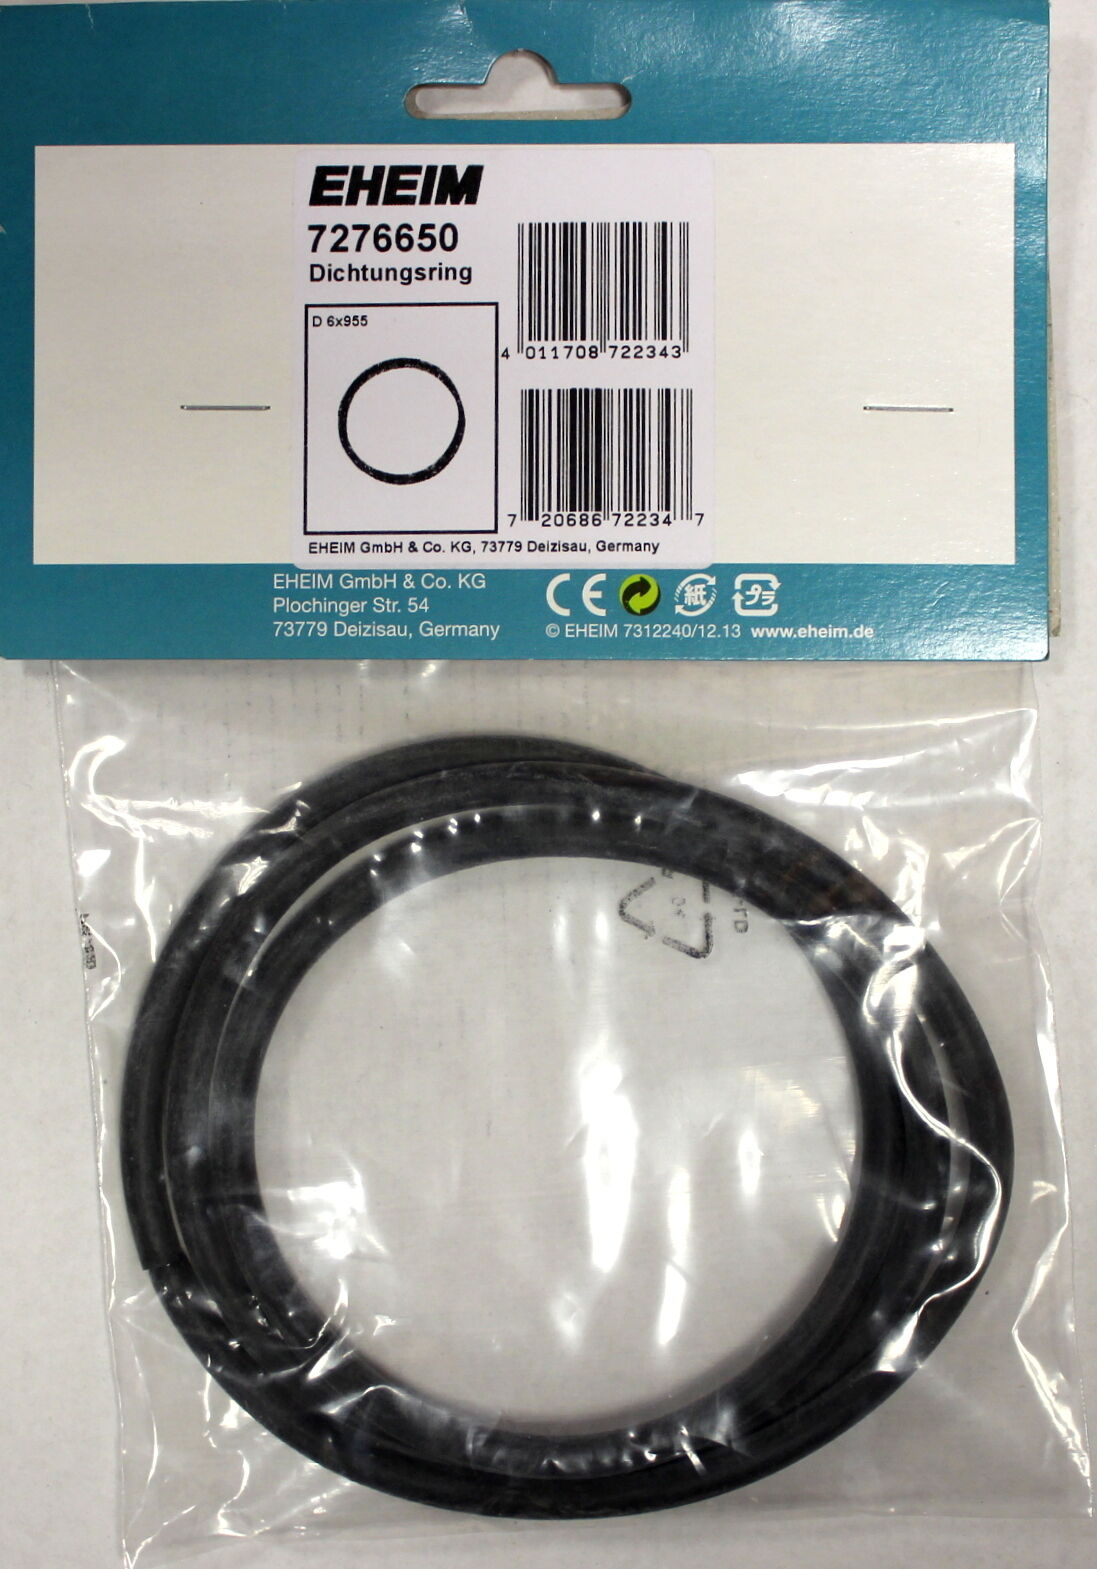 Eheim Sealing Ring - 7276650